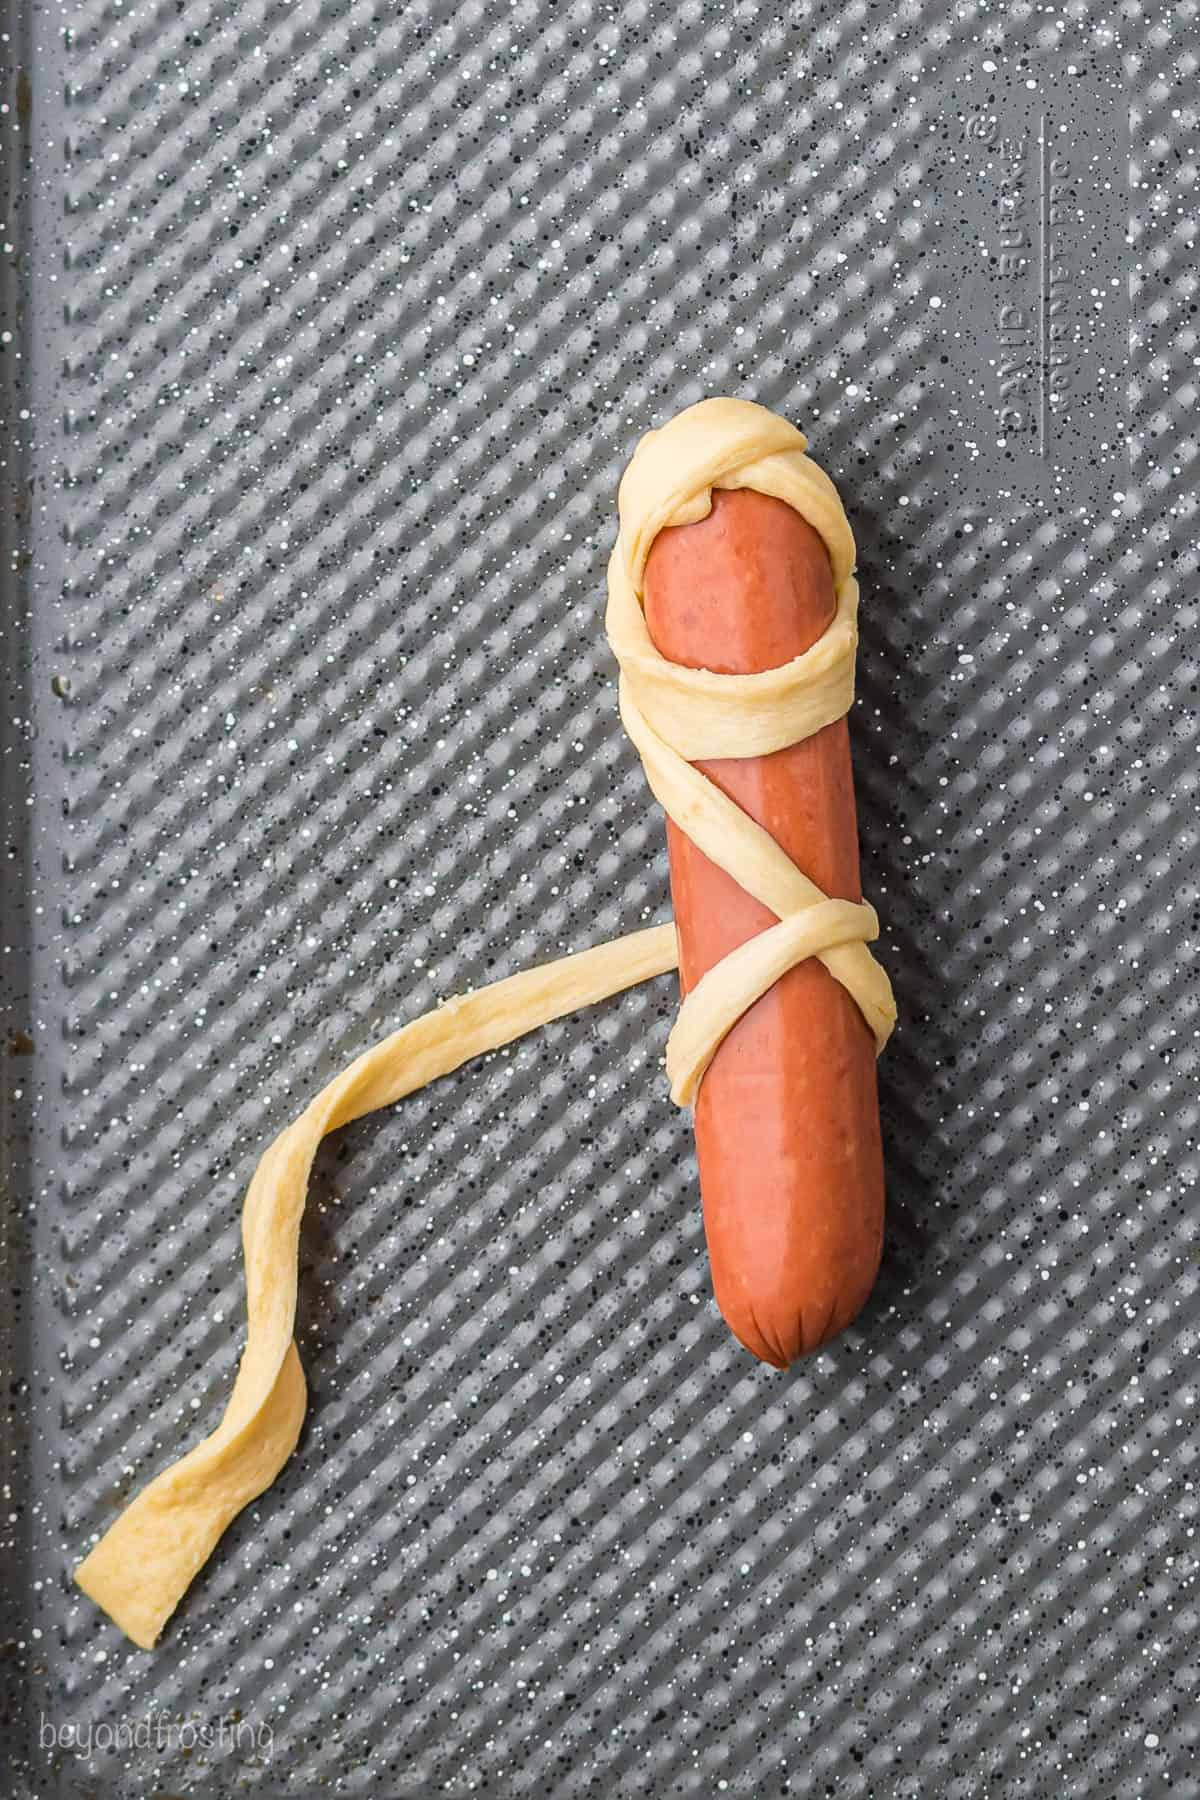 A raw hot dog being wrapped with a strip of crescent dough